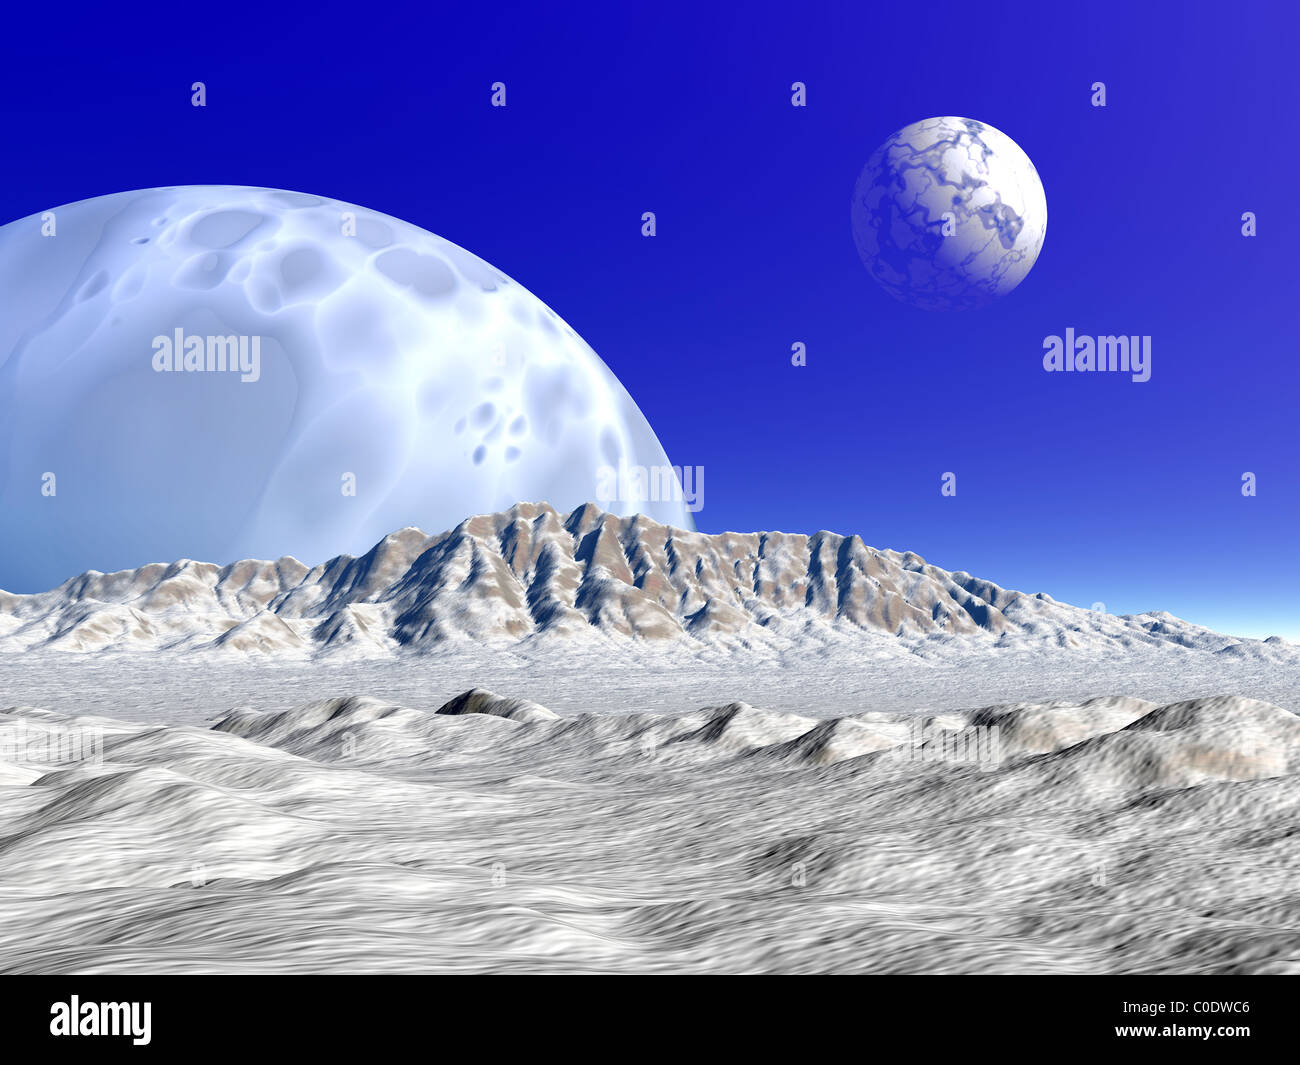 Artist's concept of an alien planetary system. - Stock Image